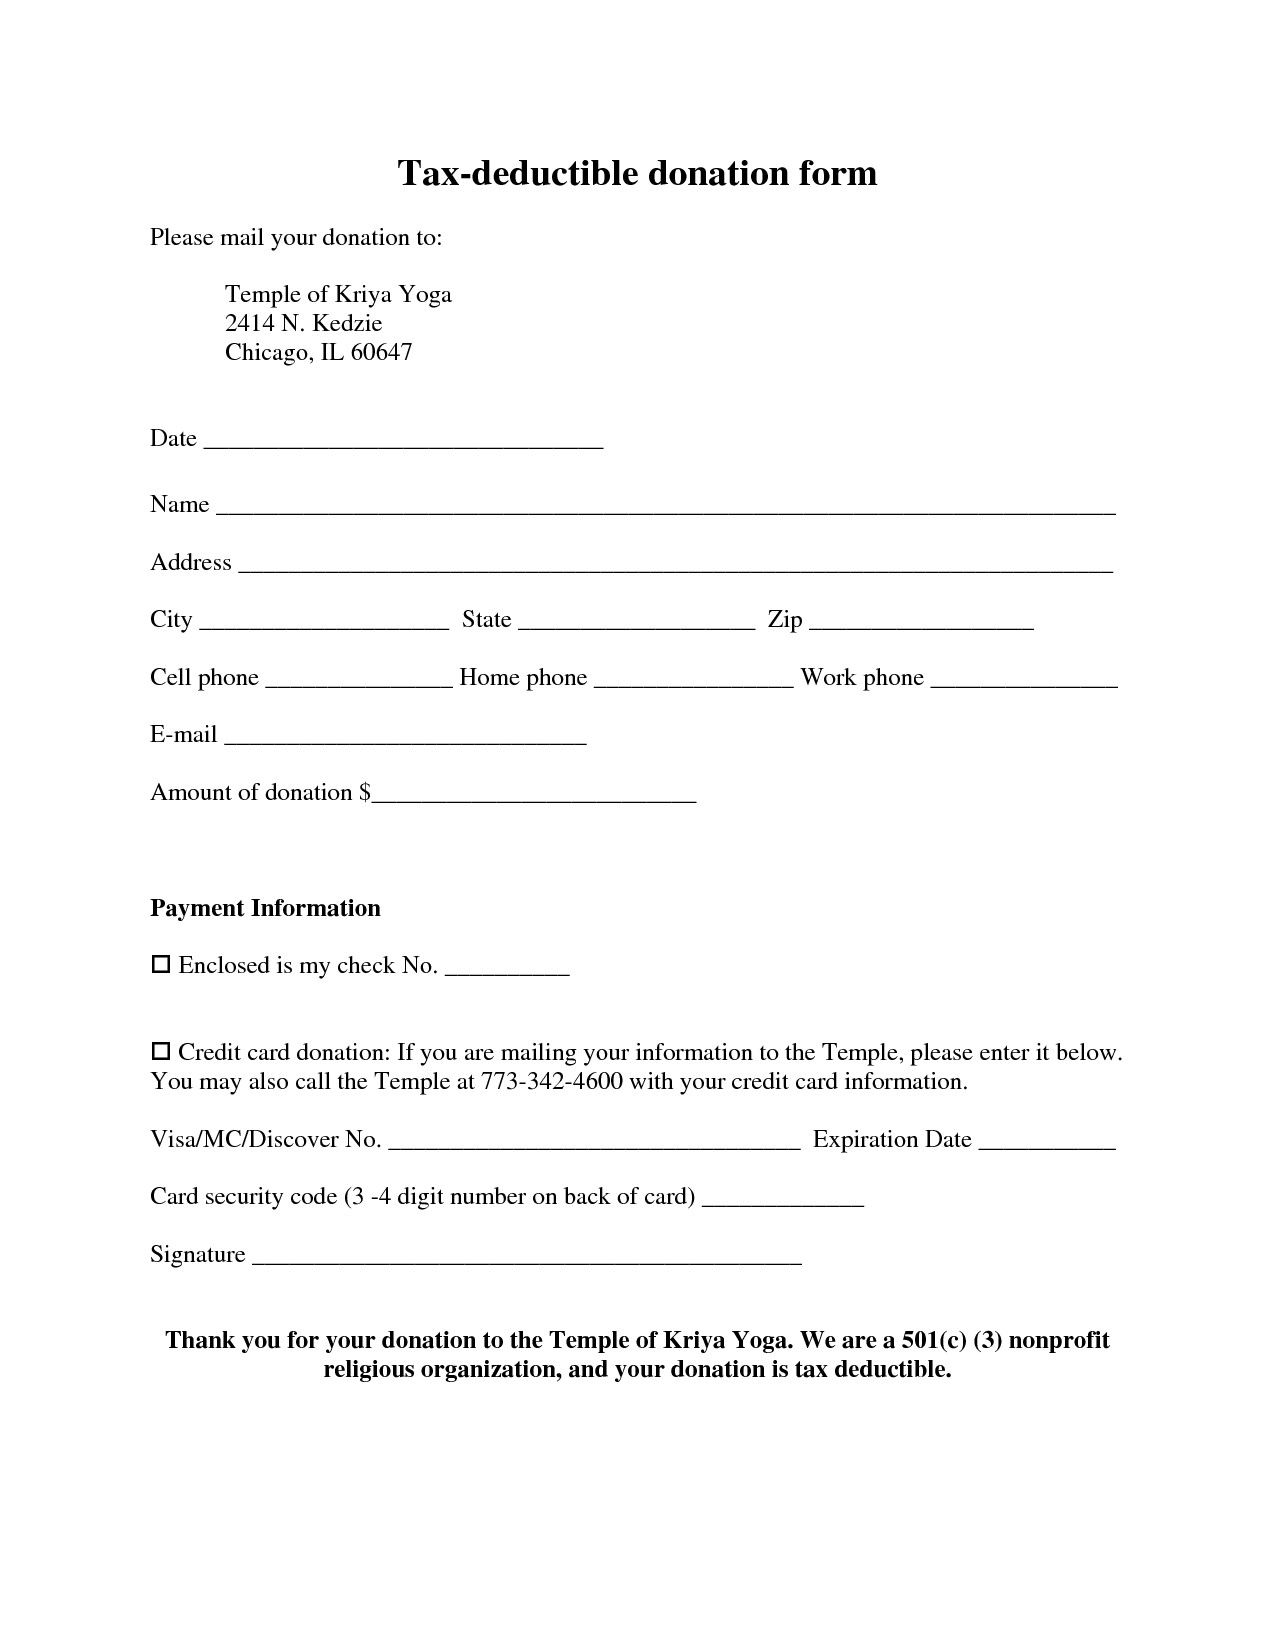 Tax Write Off Donation Letter Template - Tax Donation form Template Beautiful form Best S 501 Tax Exempt